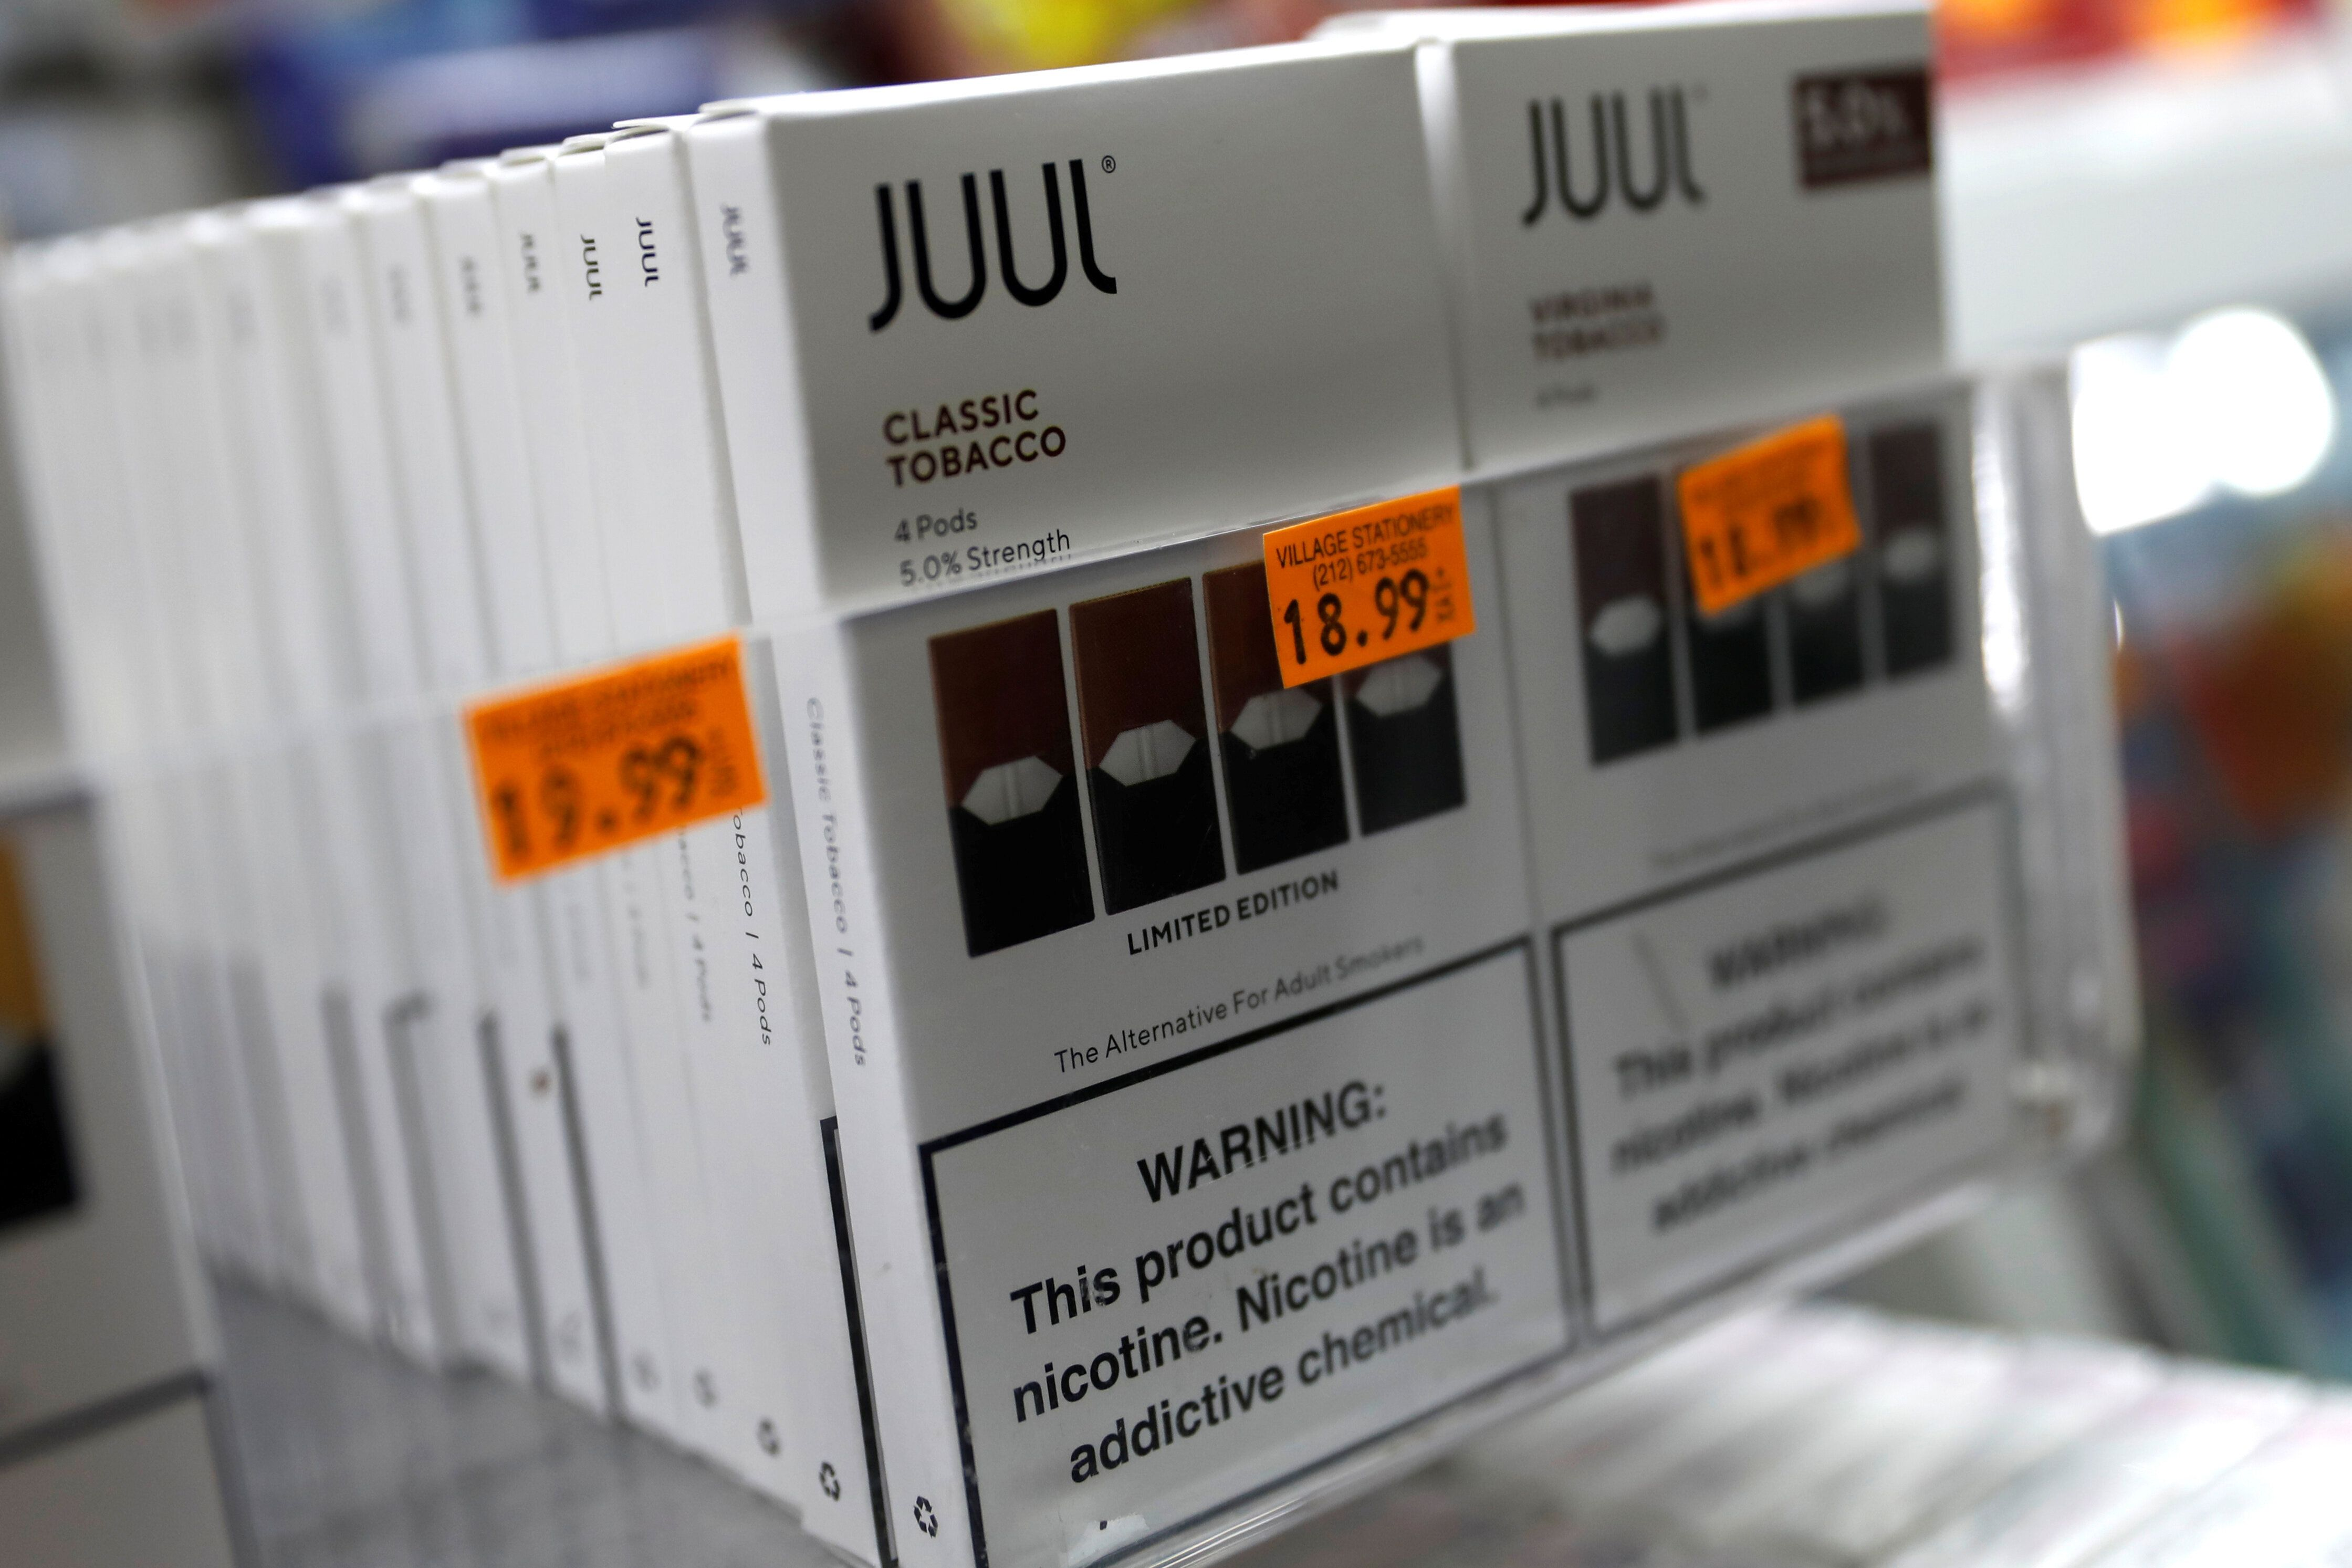 Vaping company Juul Inc. is accused of marketing its e-cigarette products as a safer alternative to smoking cigarettes withou